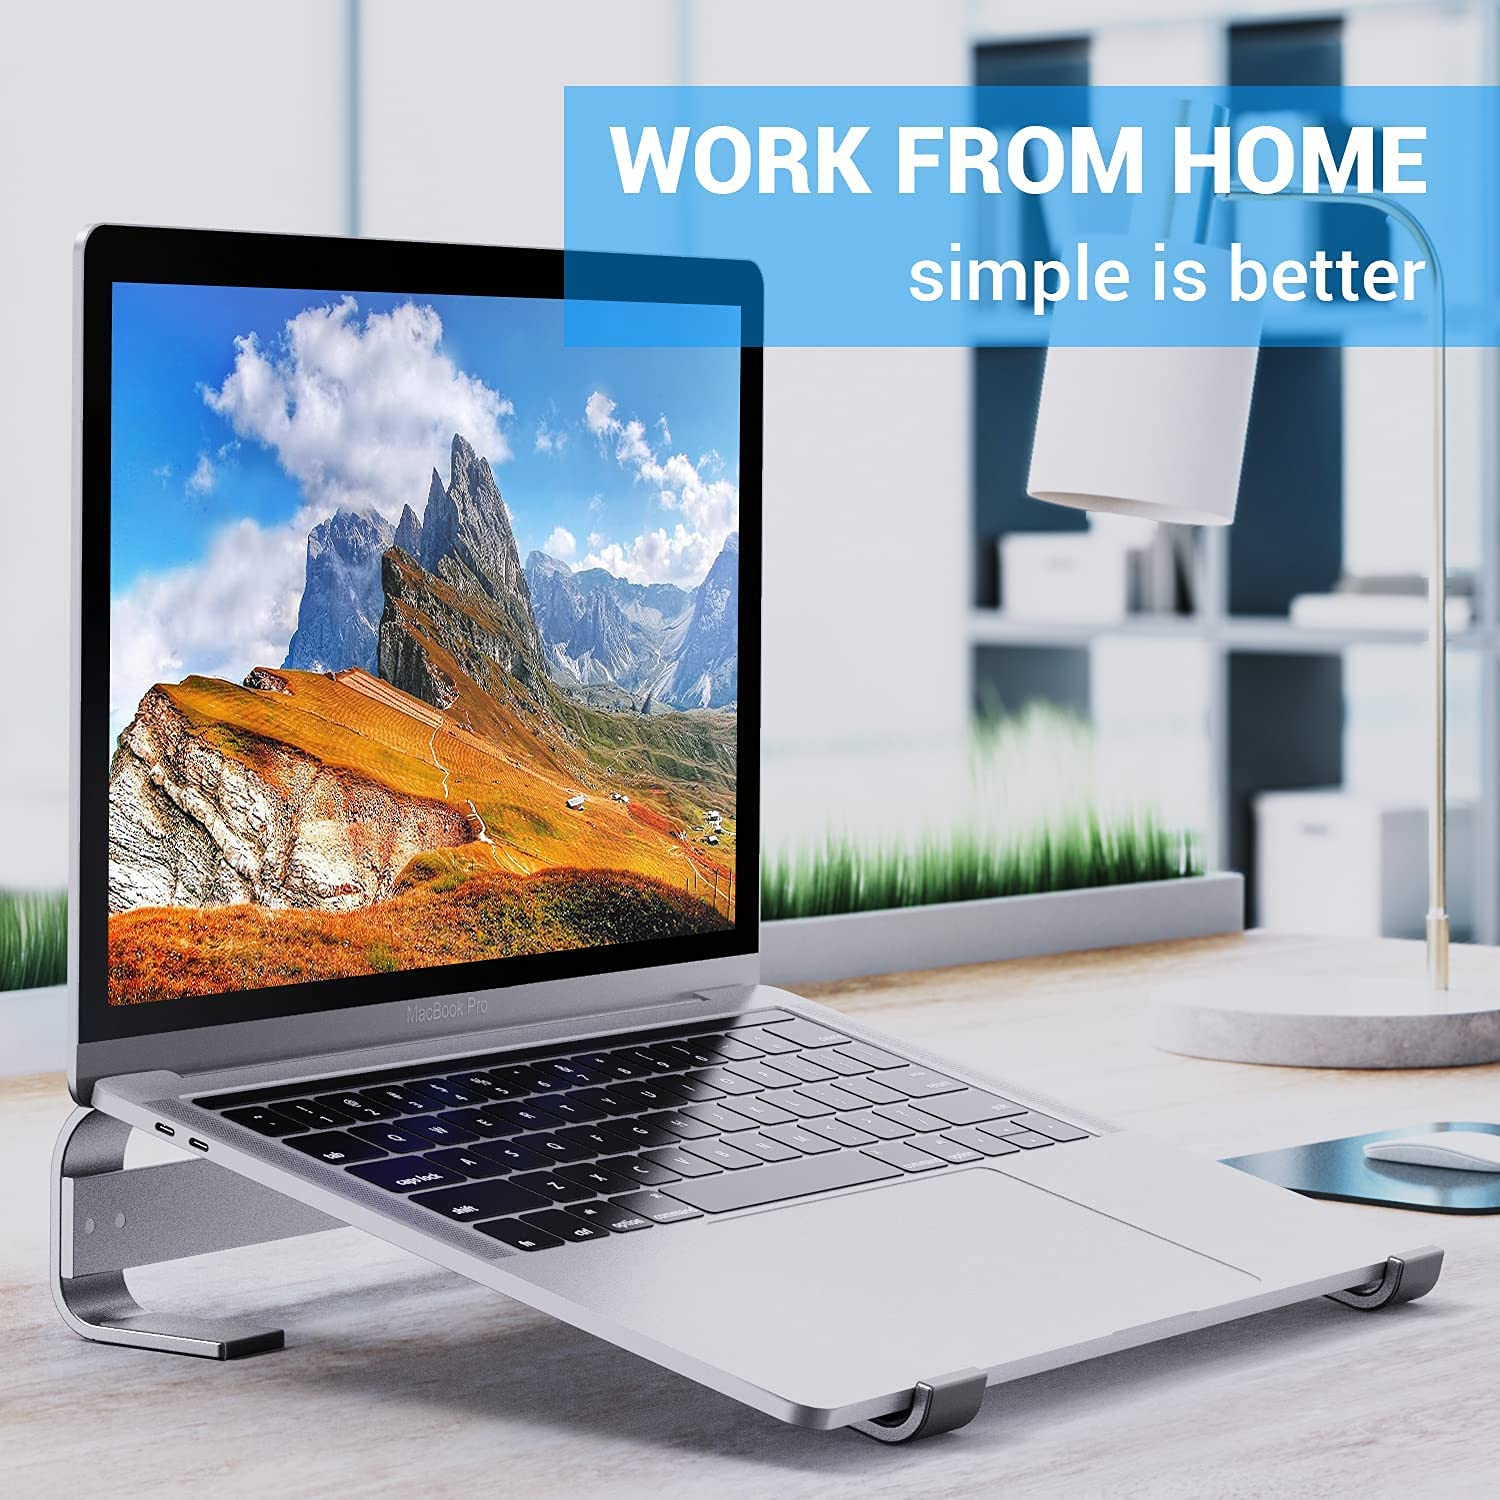 Ohuhu 2 Pack Monitor Stand Riser + Laptop Stand